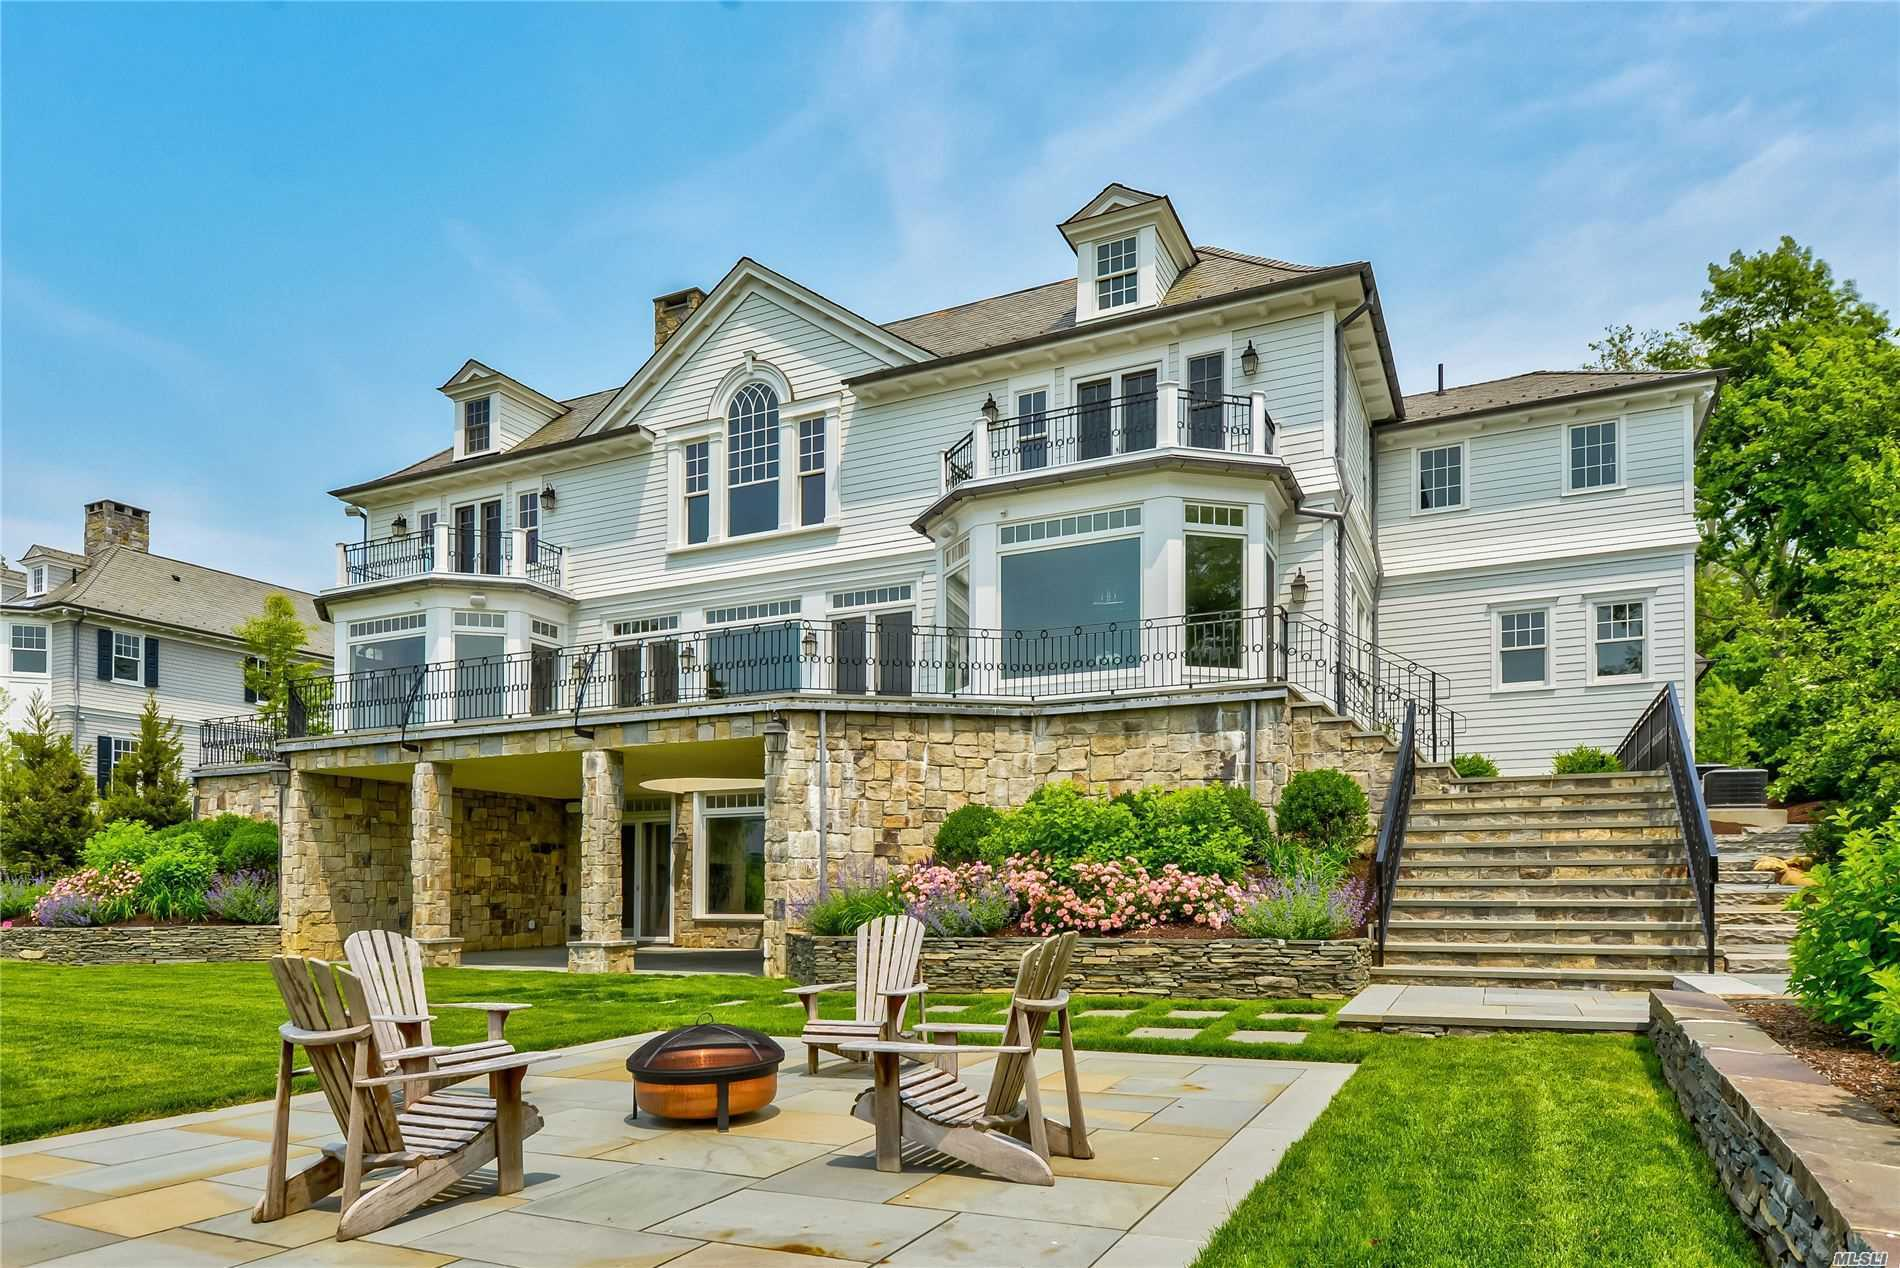 Newly Designed And Built This Connecticut Stone And Ship-Lap Center Hall Colonial, Situated On A Private Road In Plandome Over Looks Manhasset Bay With Year Round Sunsets. Offers 6 Bedrooms, 5 Full Baths, 3 1/2 Baths. School District 6. Convenient To Train And Shopping. Dock Permit Secured.